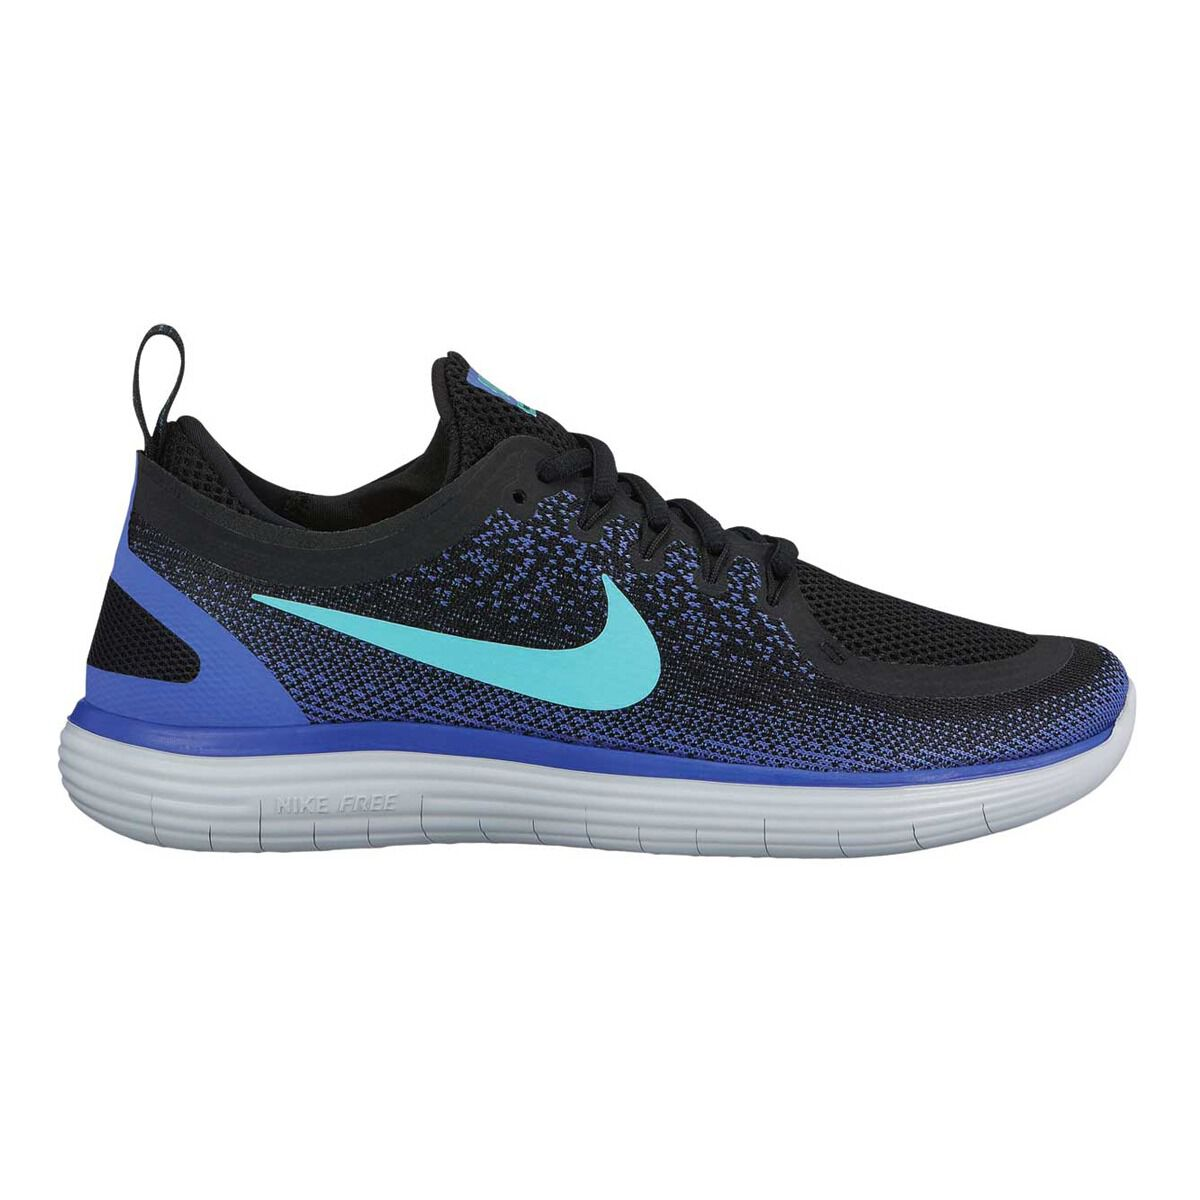 outlet store 694da 9c0b5 ... top quality nike free rn distance 2 womens running shoes black green us  7.5 black 69996